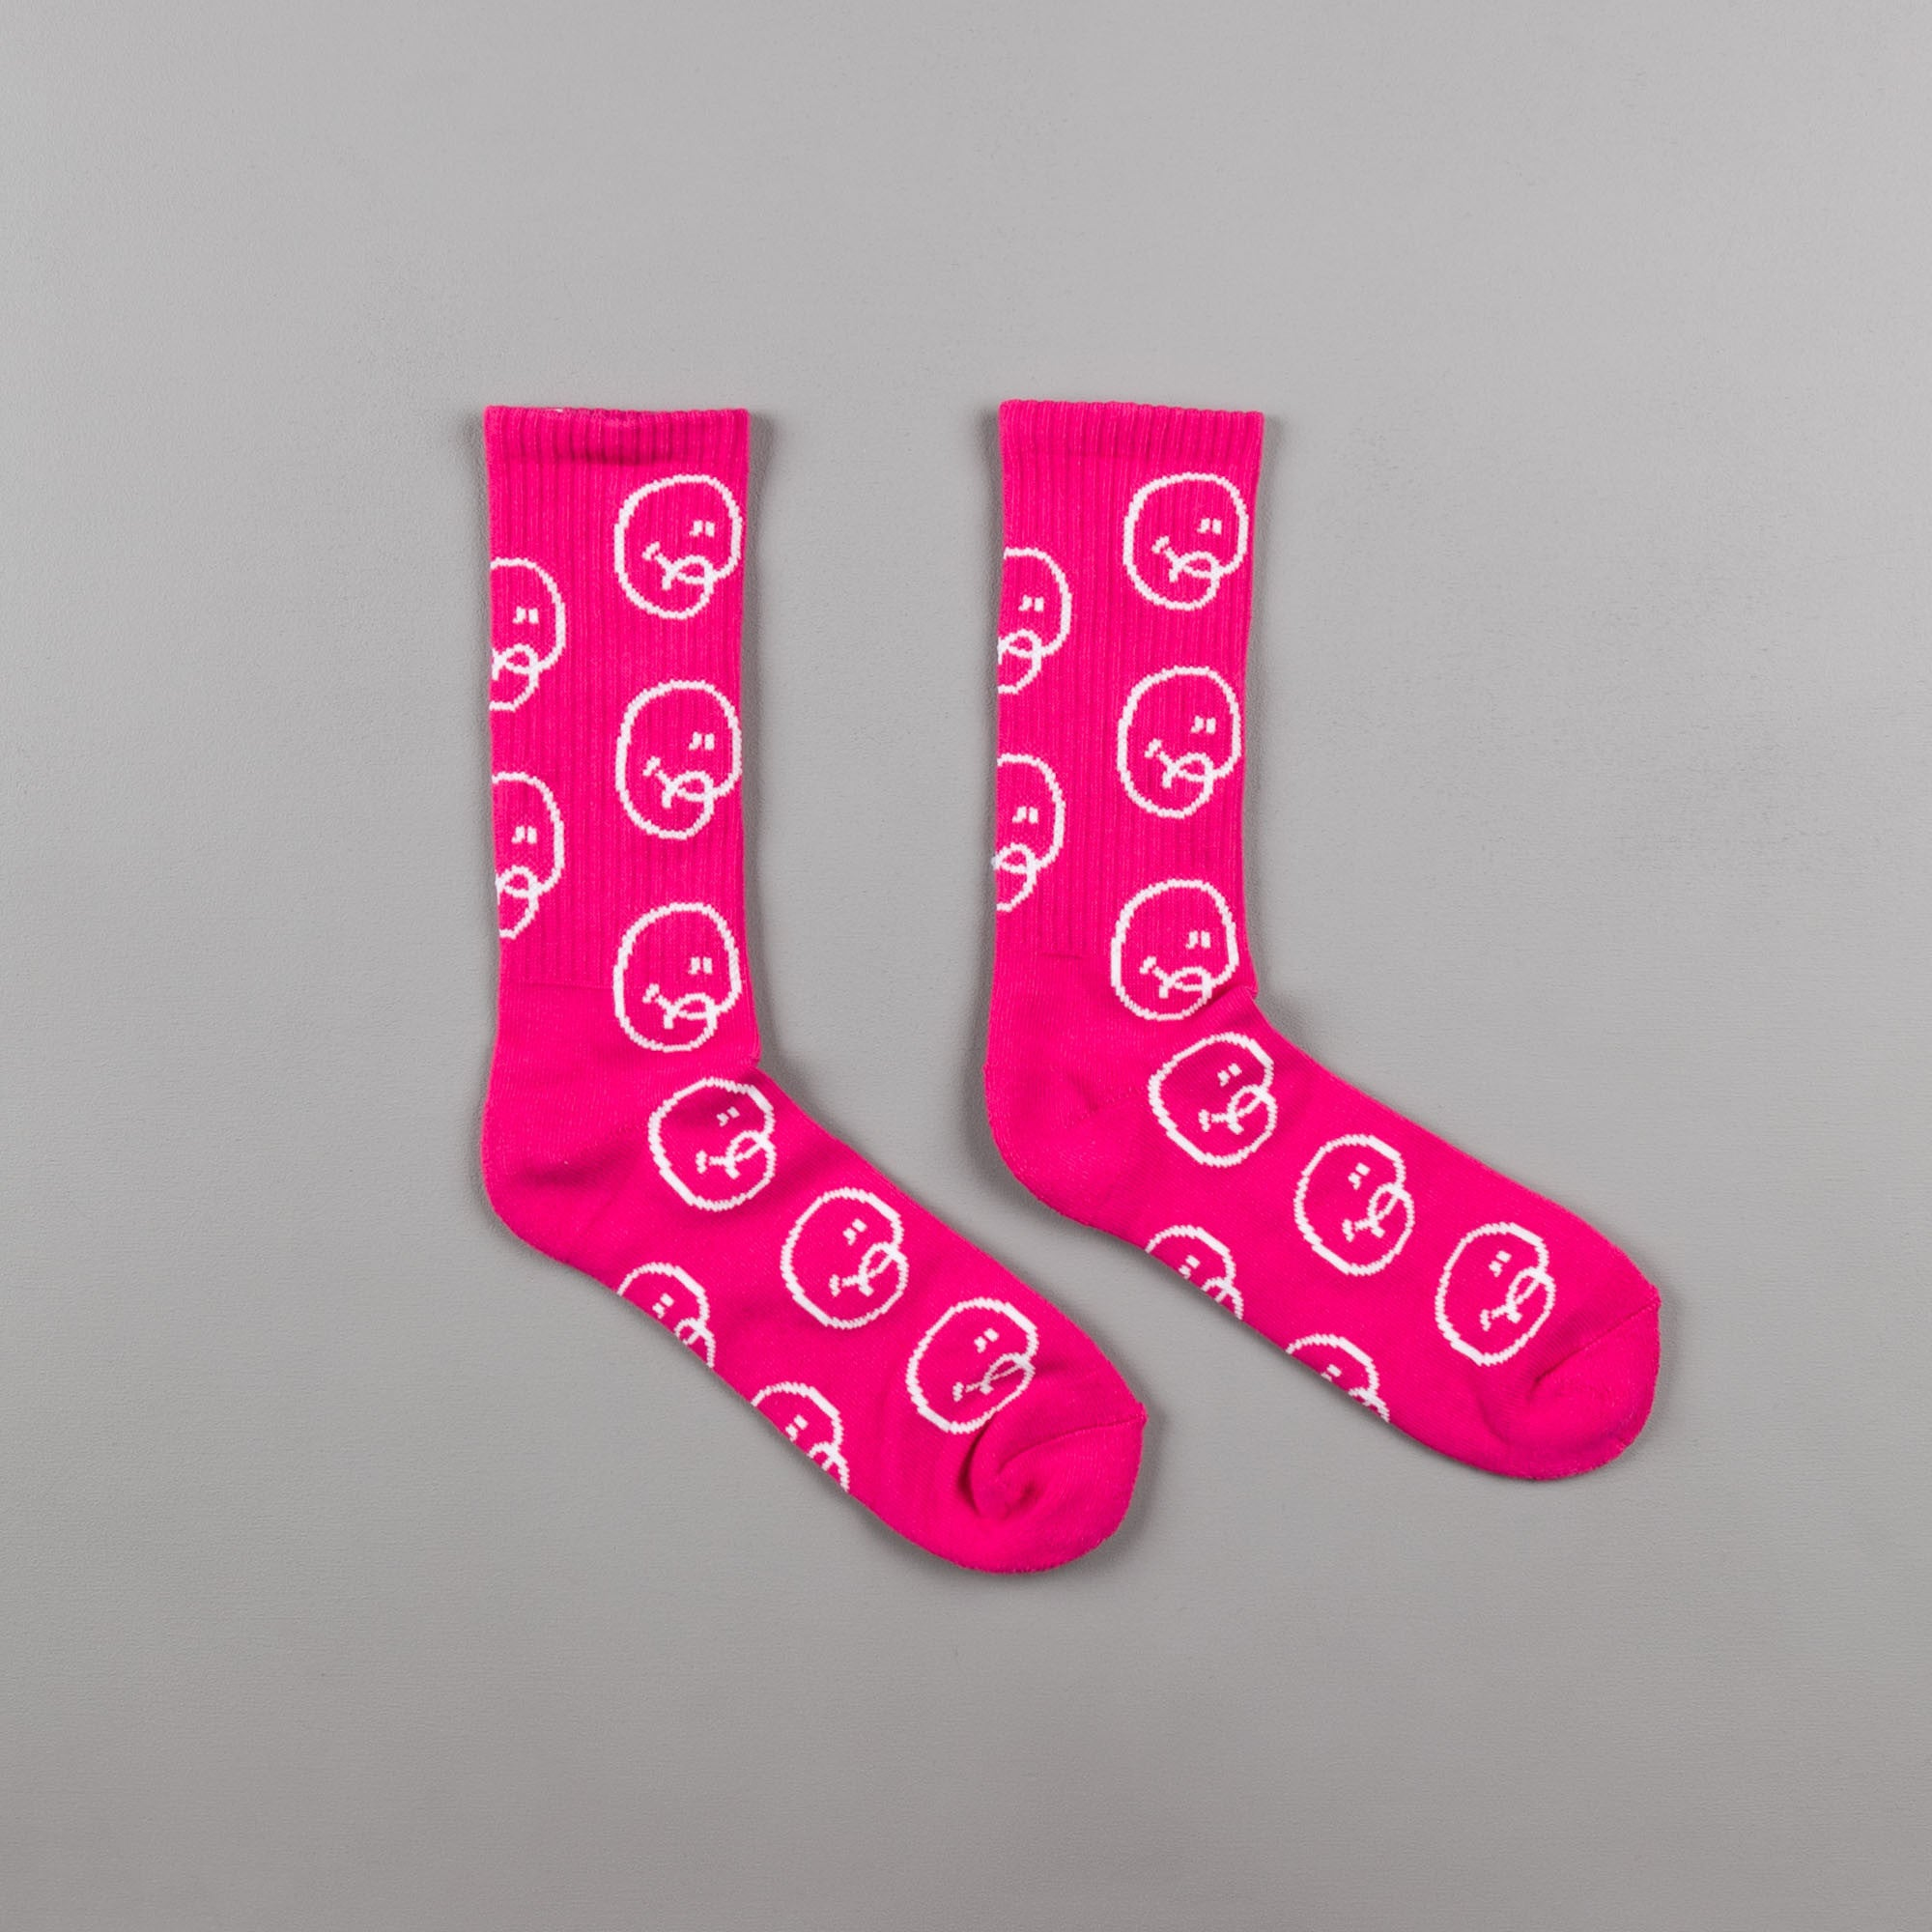 Chrystie NYC Bubble Man Socks - Pink